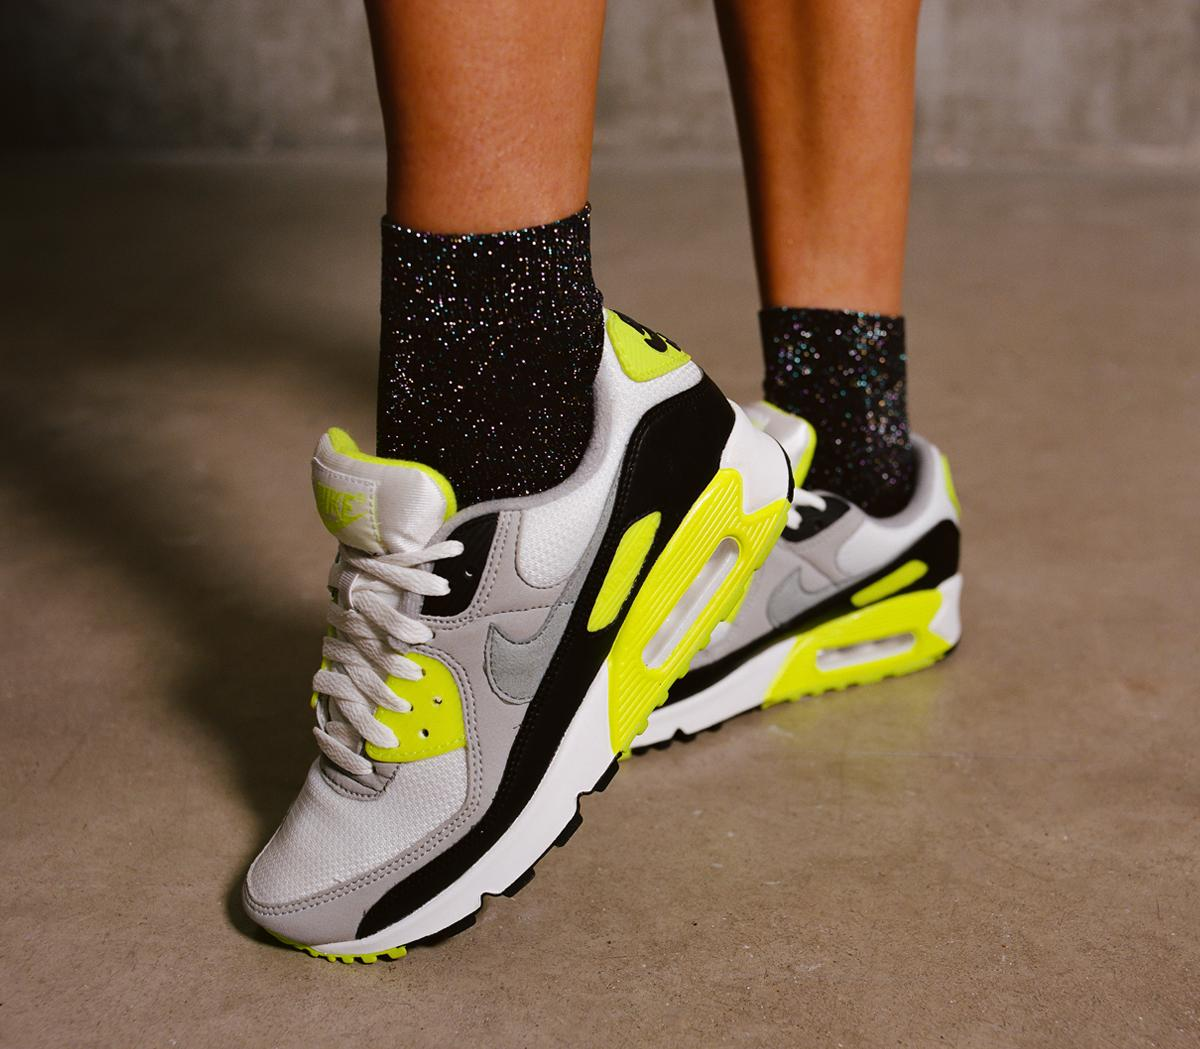 Airing Always Supplement  Nike Air Max 90 Trainers White Grey Volt - Hers trainers